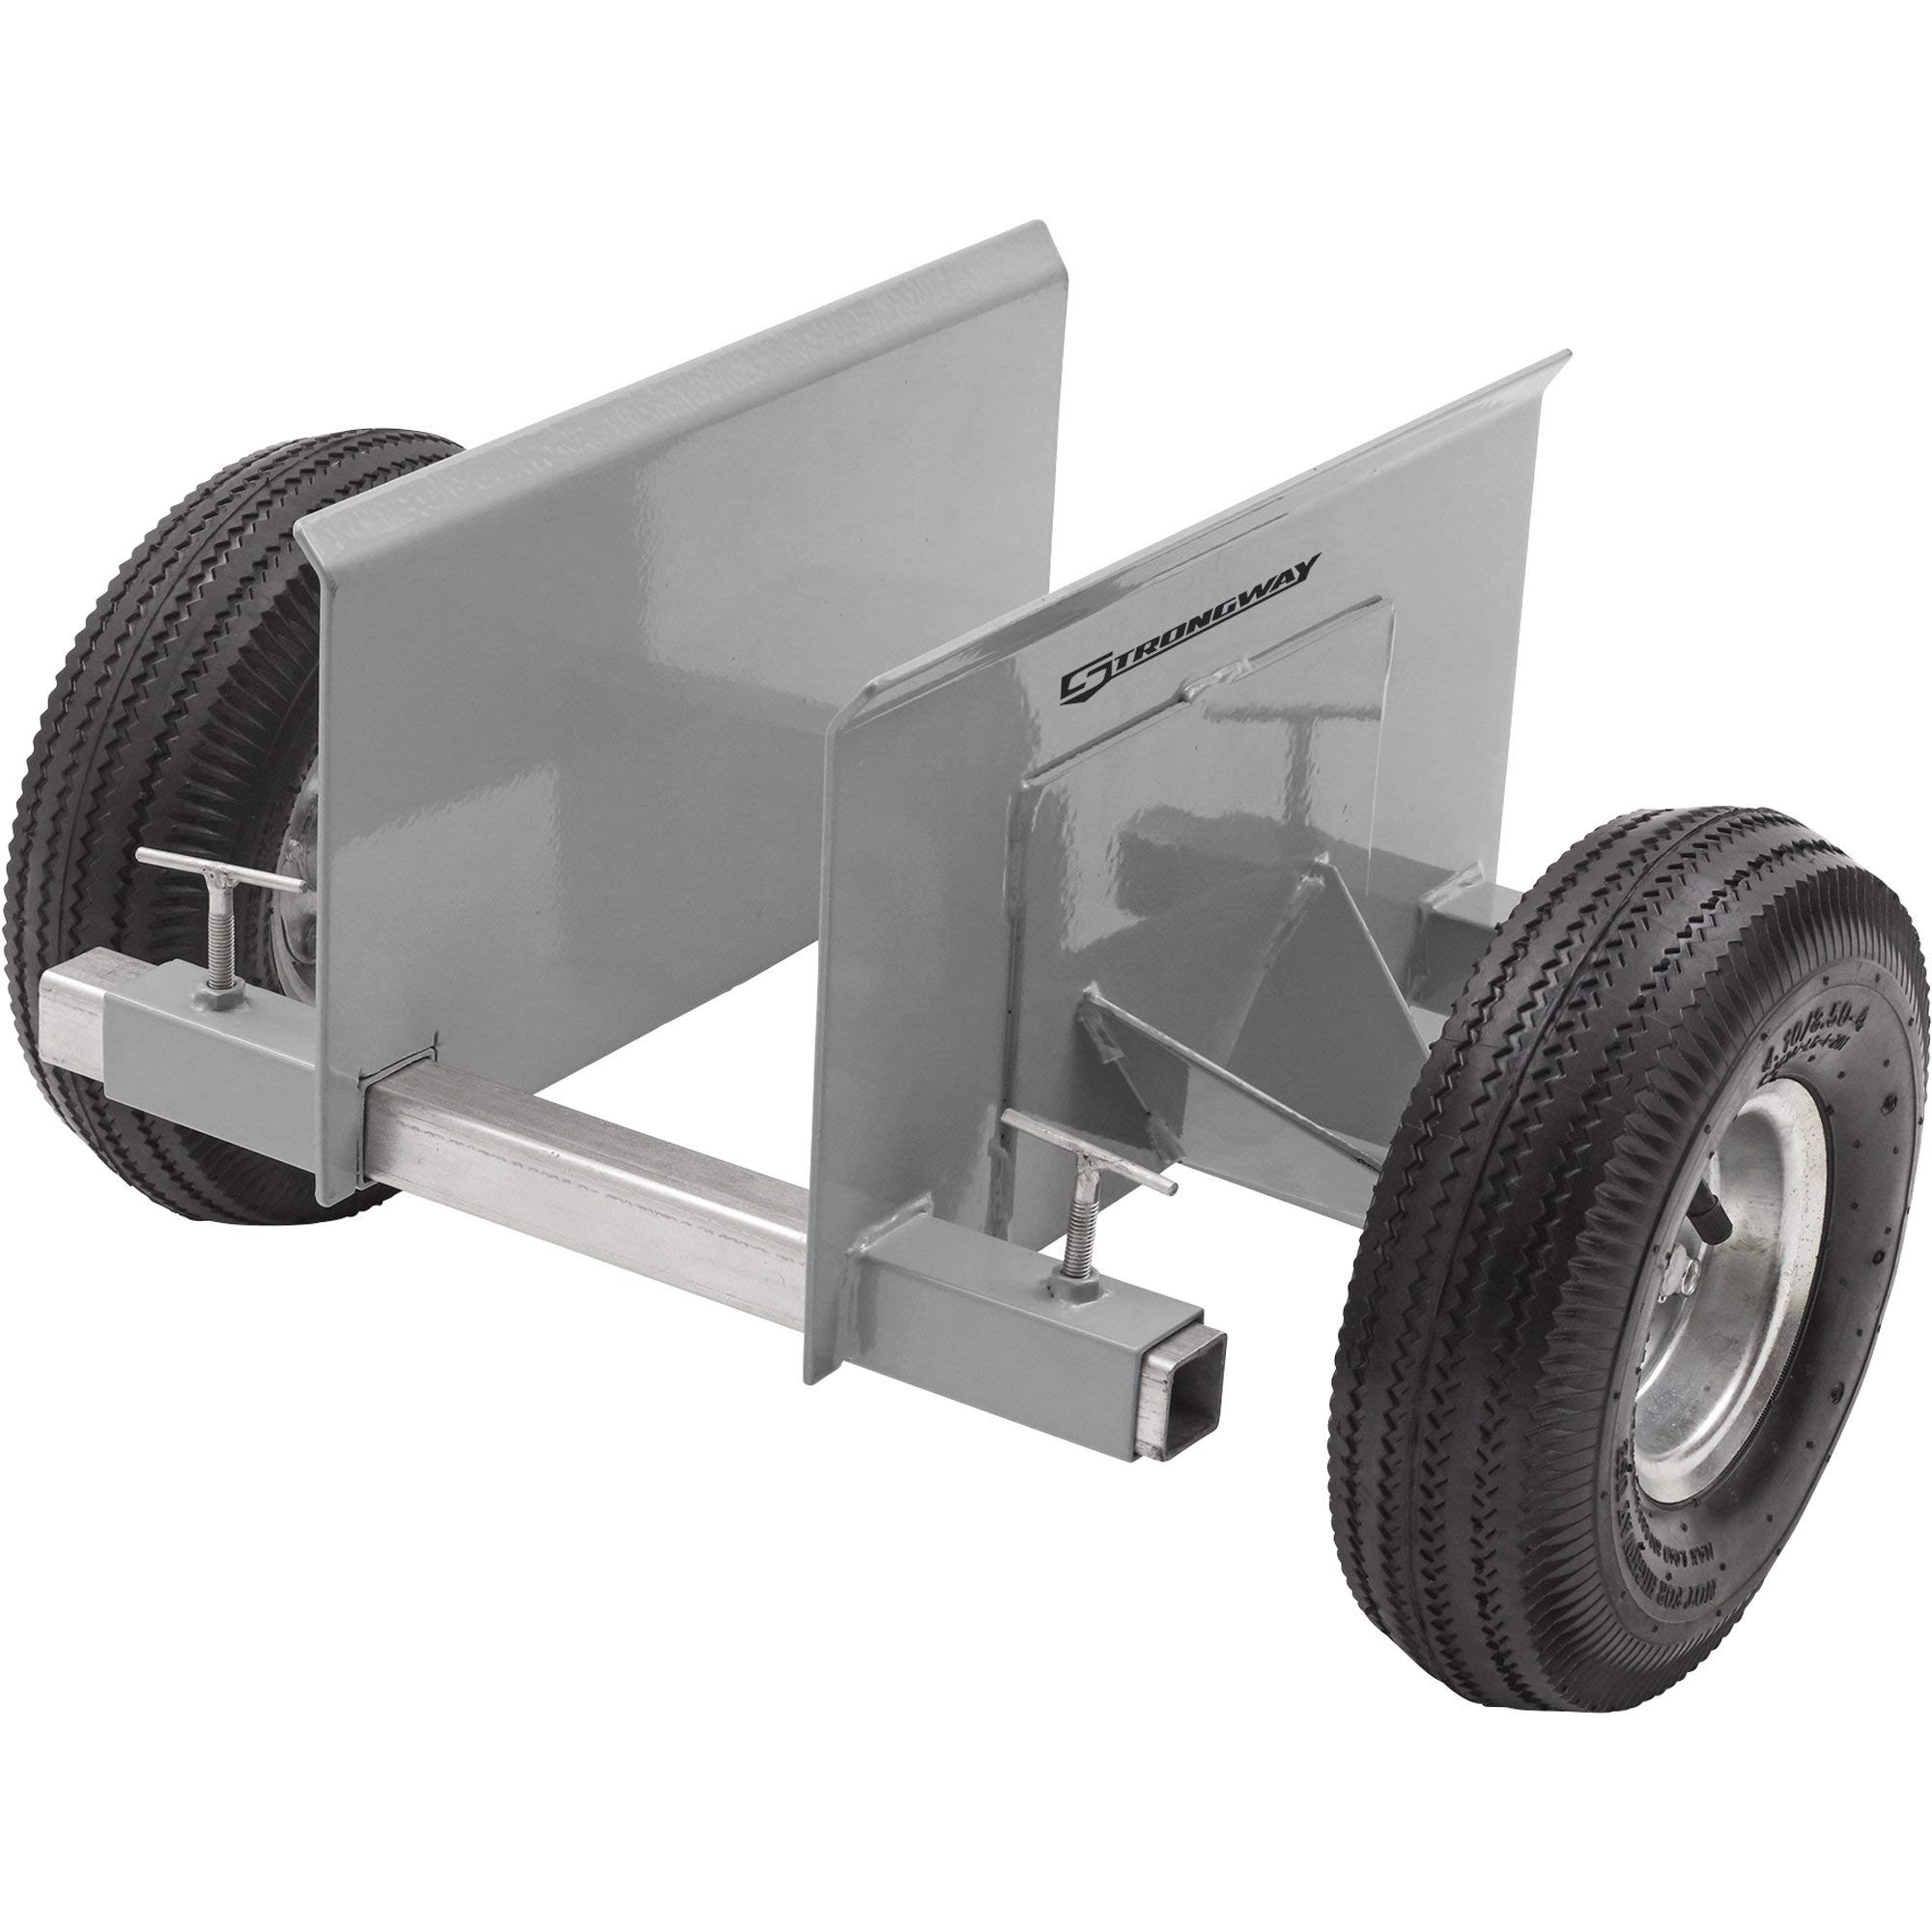 Strongway Panel Dolly with 10in. Pneumatic Wheels - 600-Lb. Capacity